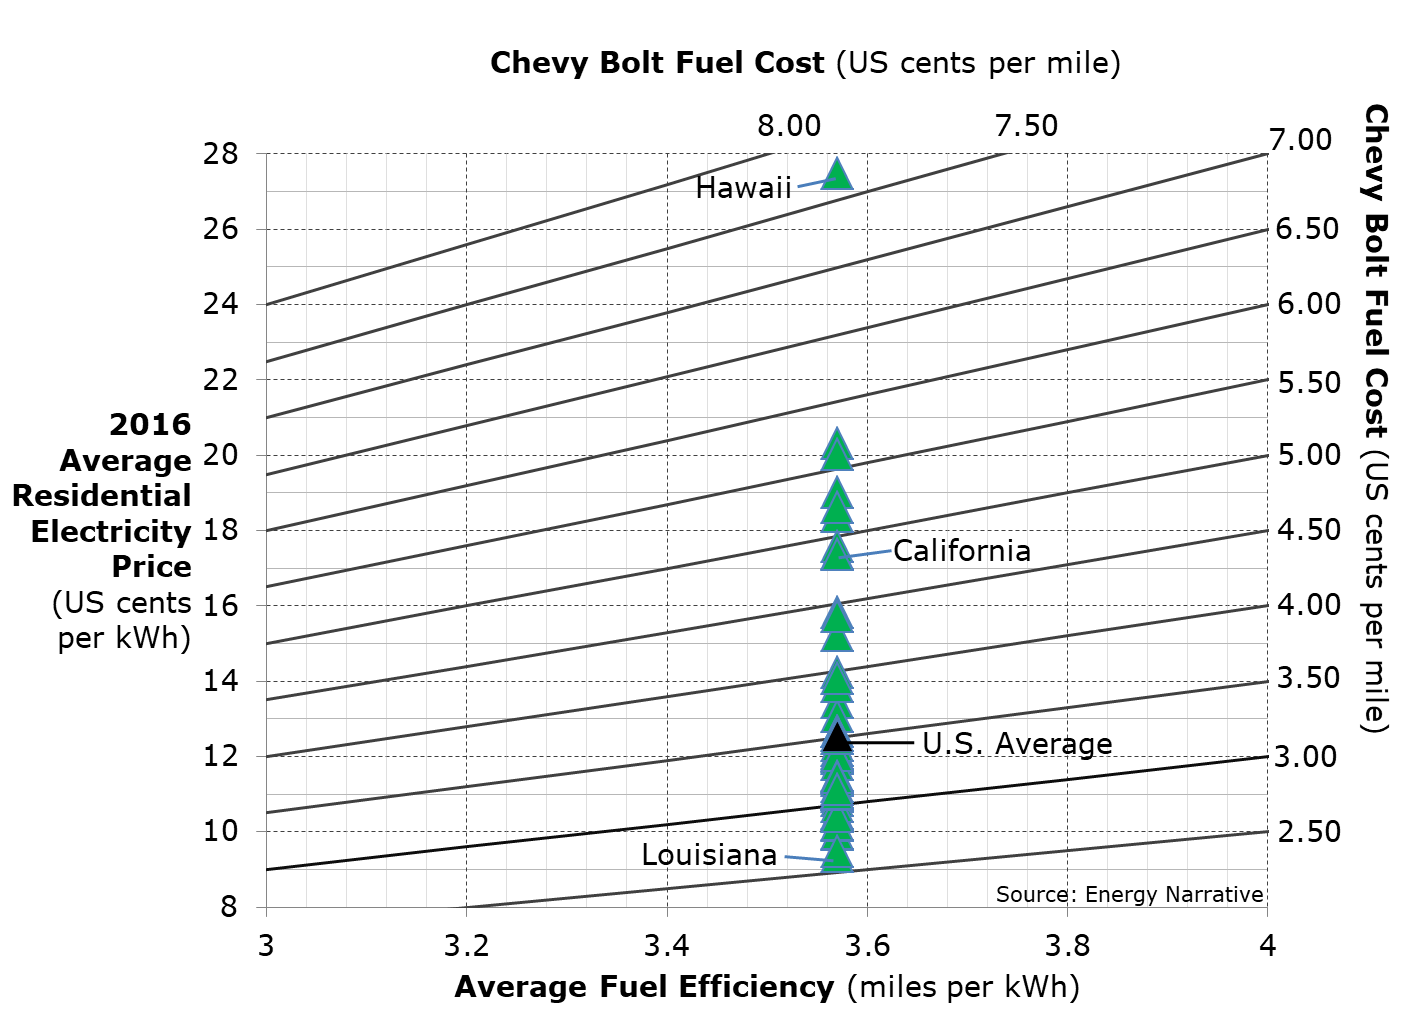 Figure 2 Chevy Bolt 2016 Average Fuel Cost Per Mile By State Us Cents